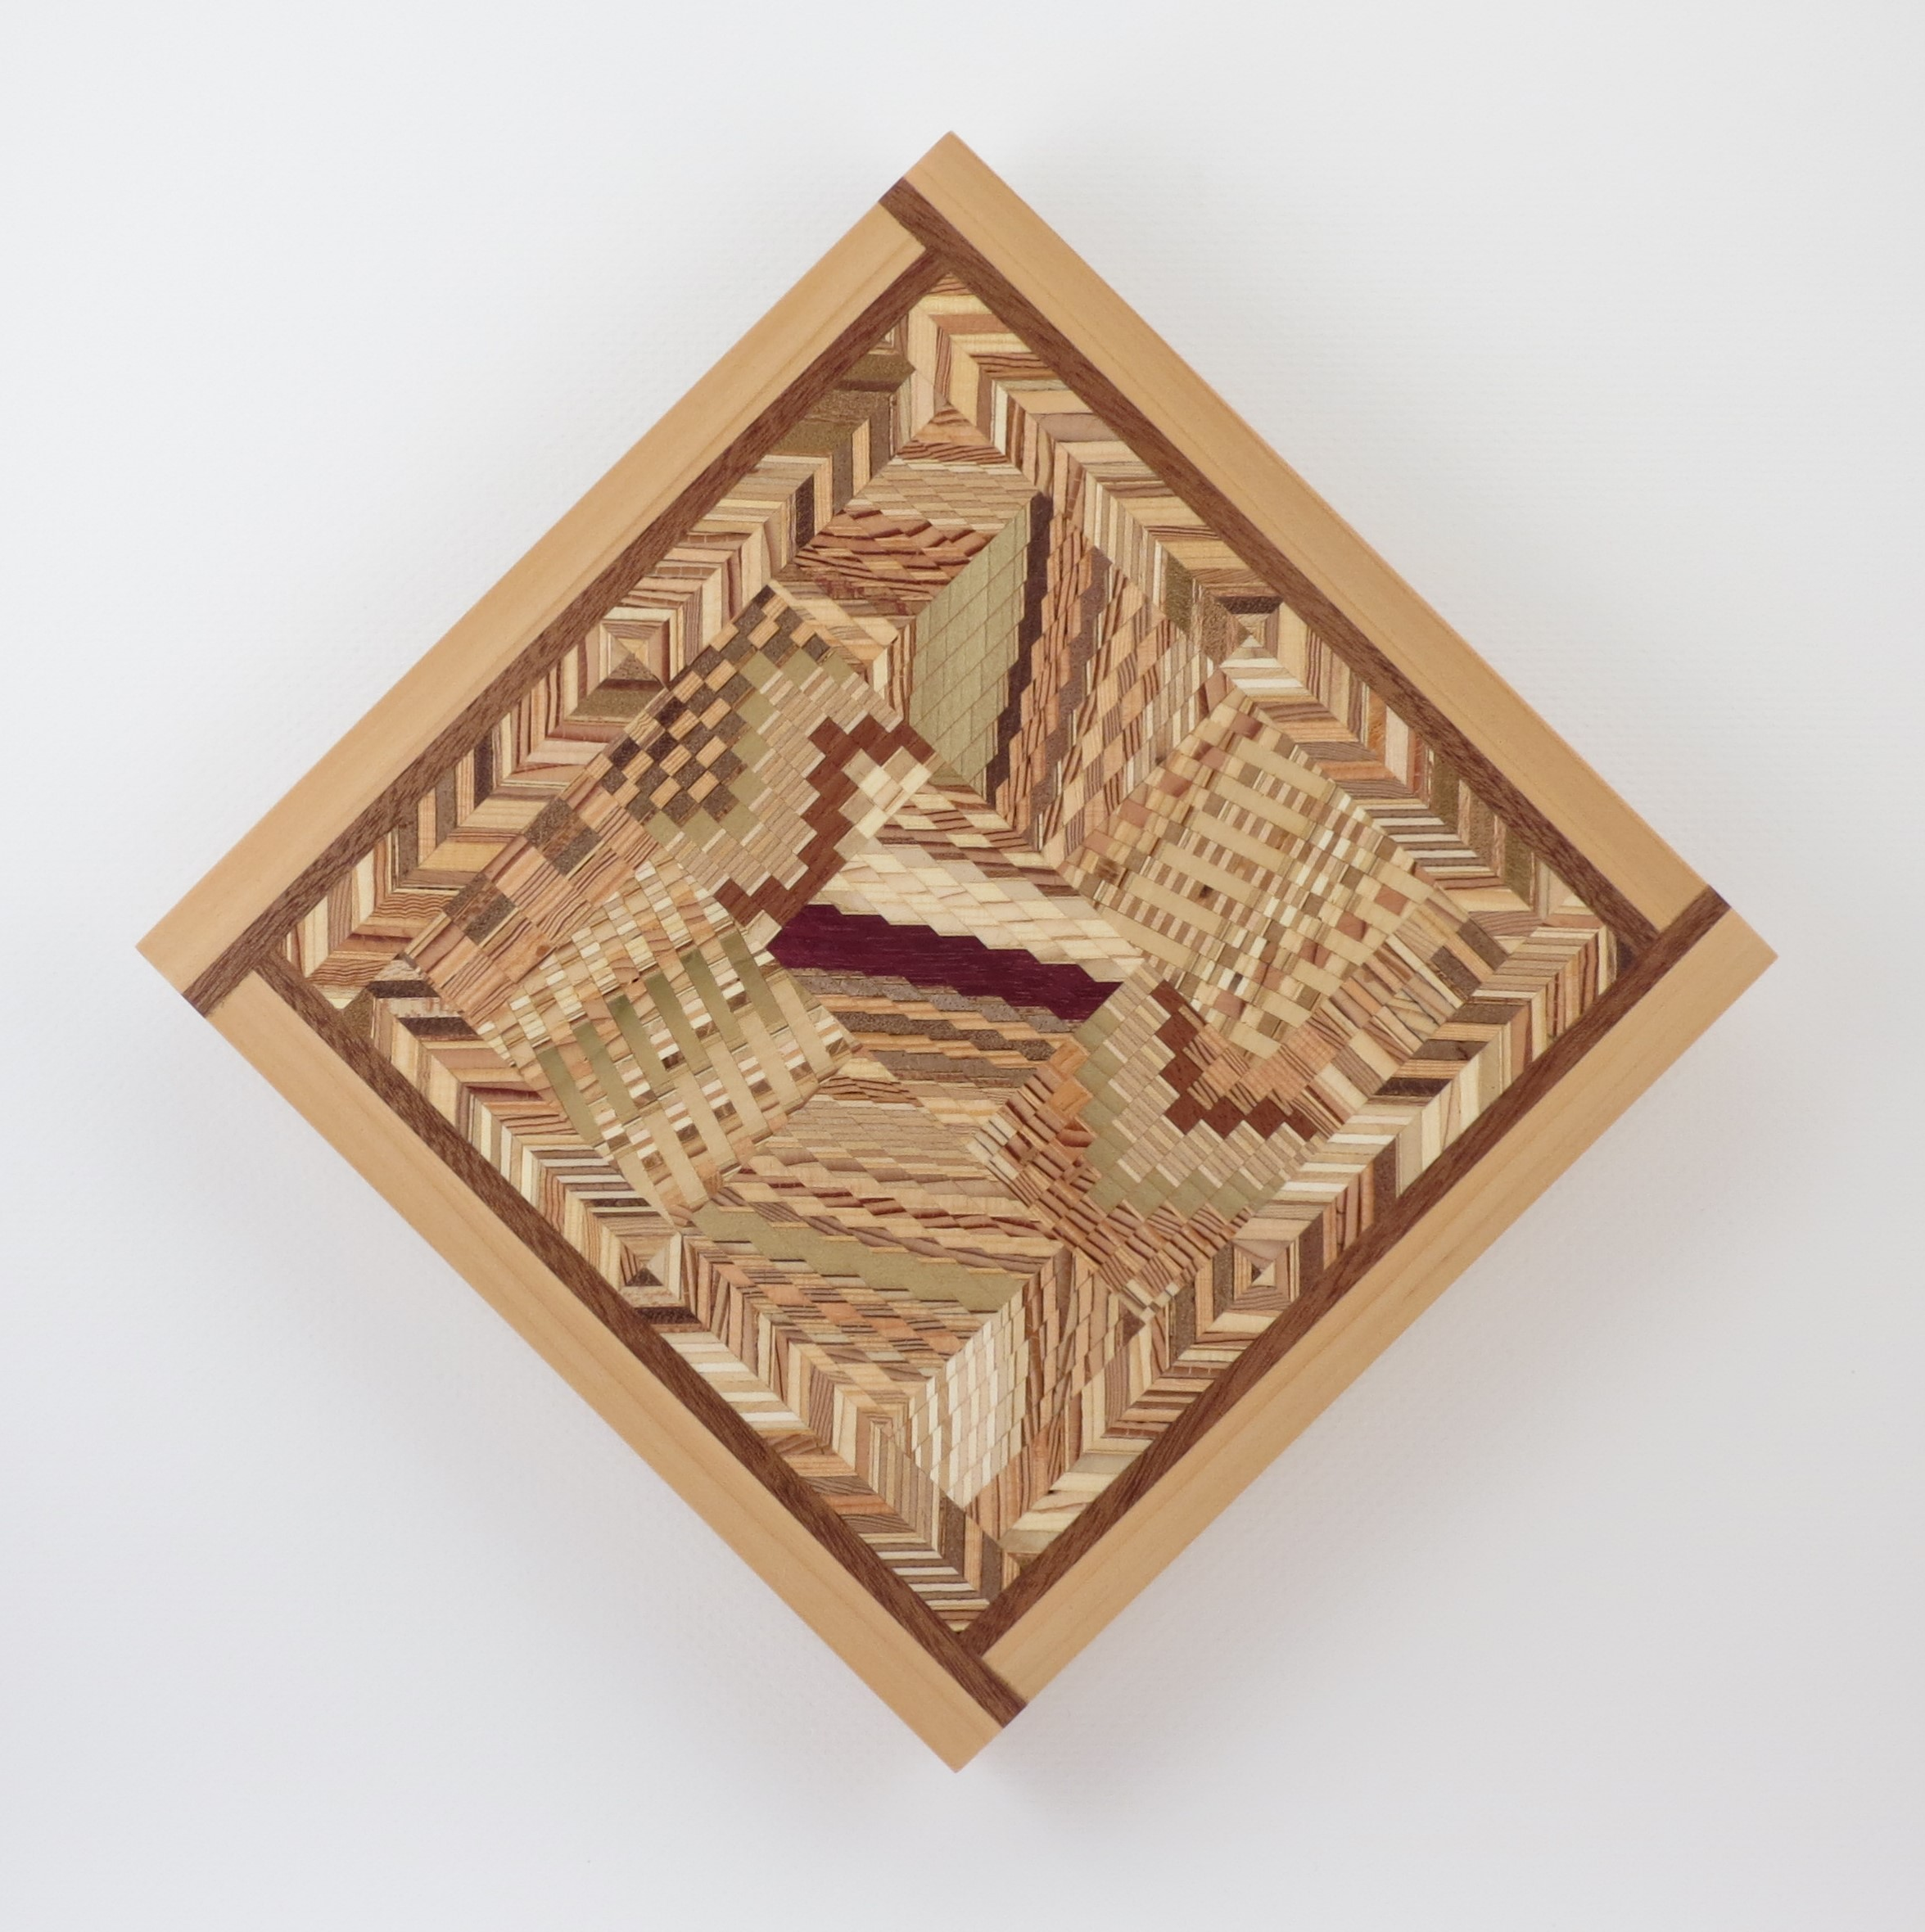 """Small Spaces Quilt #2 - 11.5"""" H x 11.5"""" W x 1"""" D"""